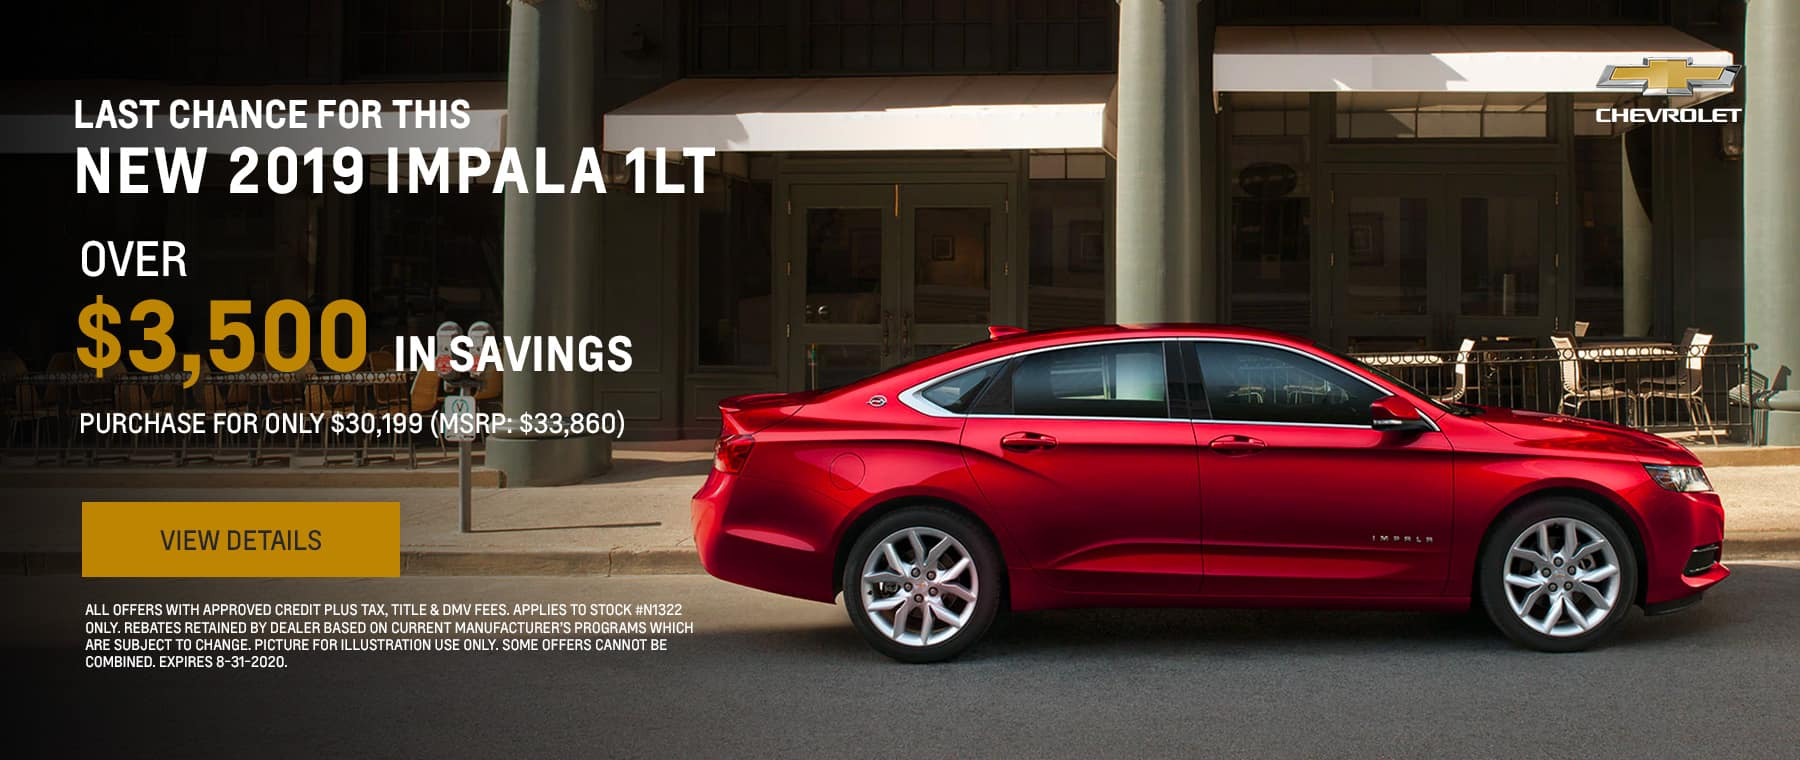 last chance for savings on a new 2019 impala